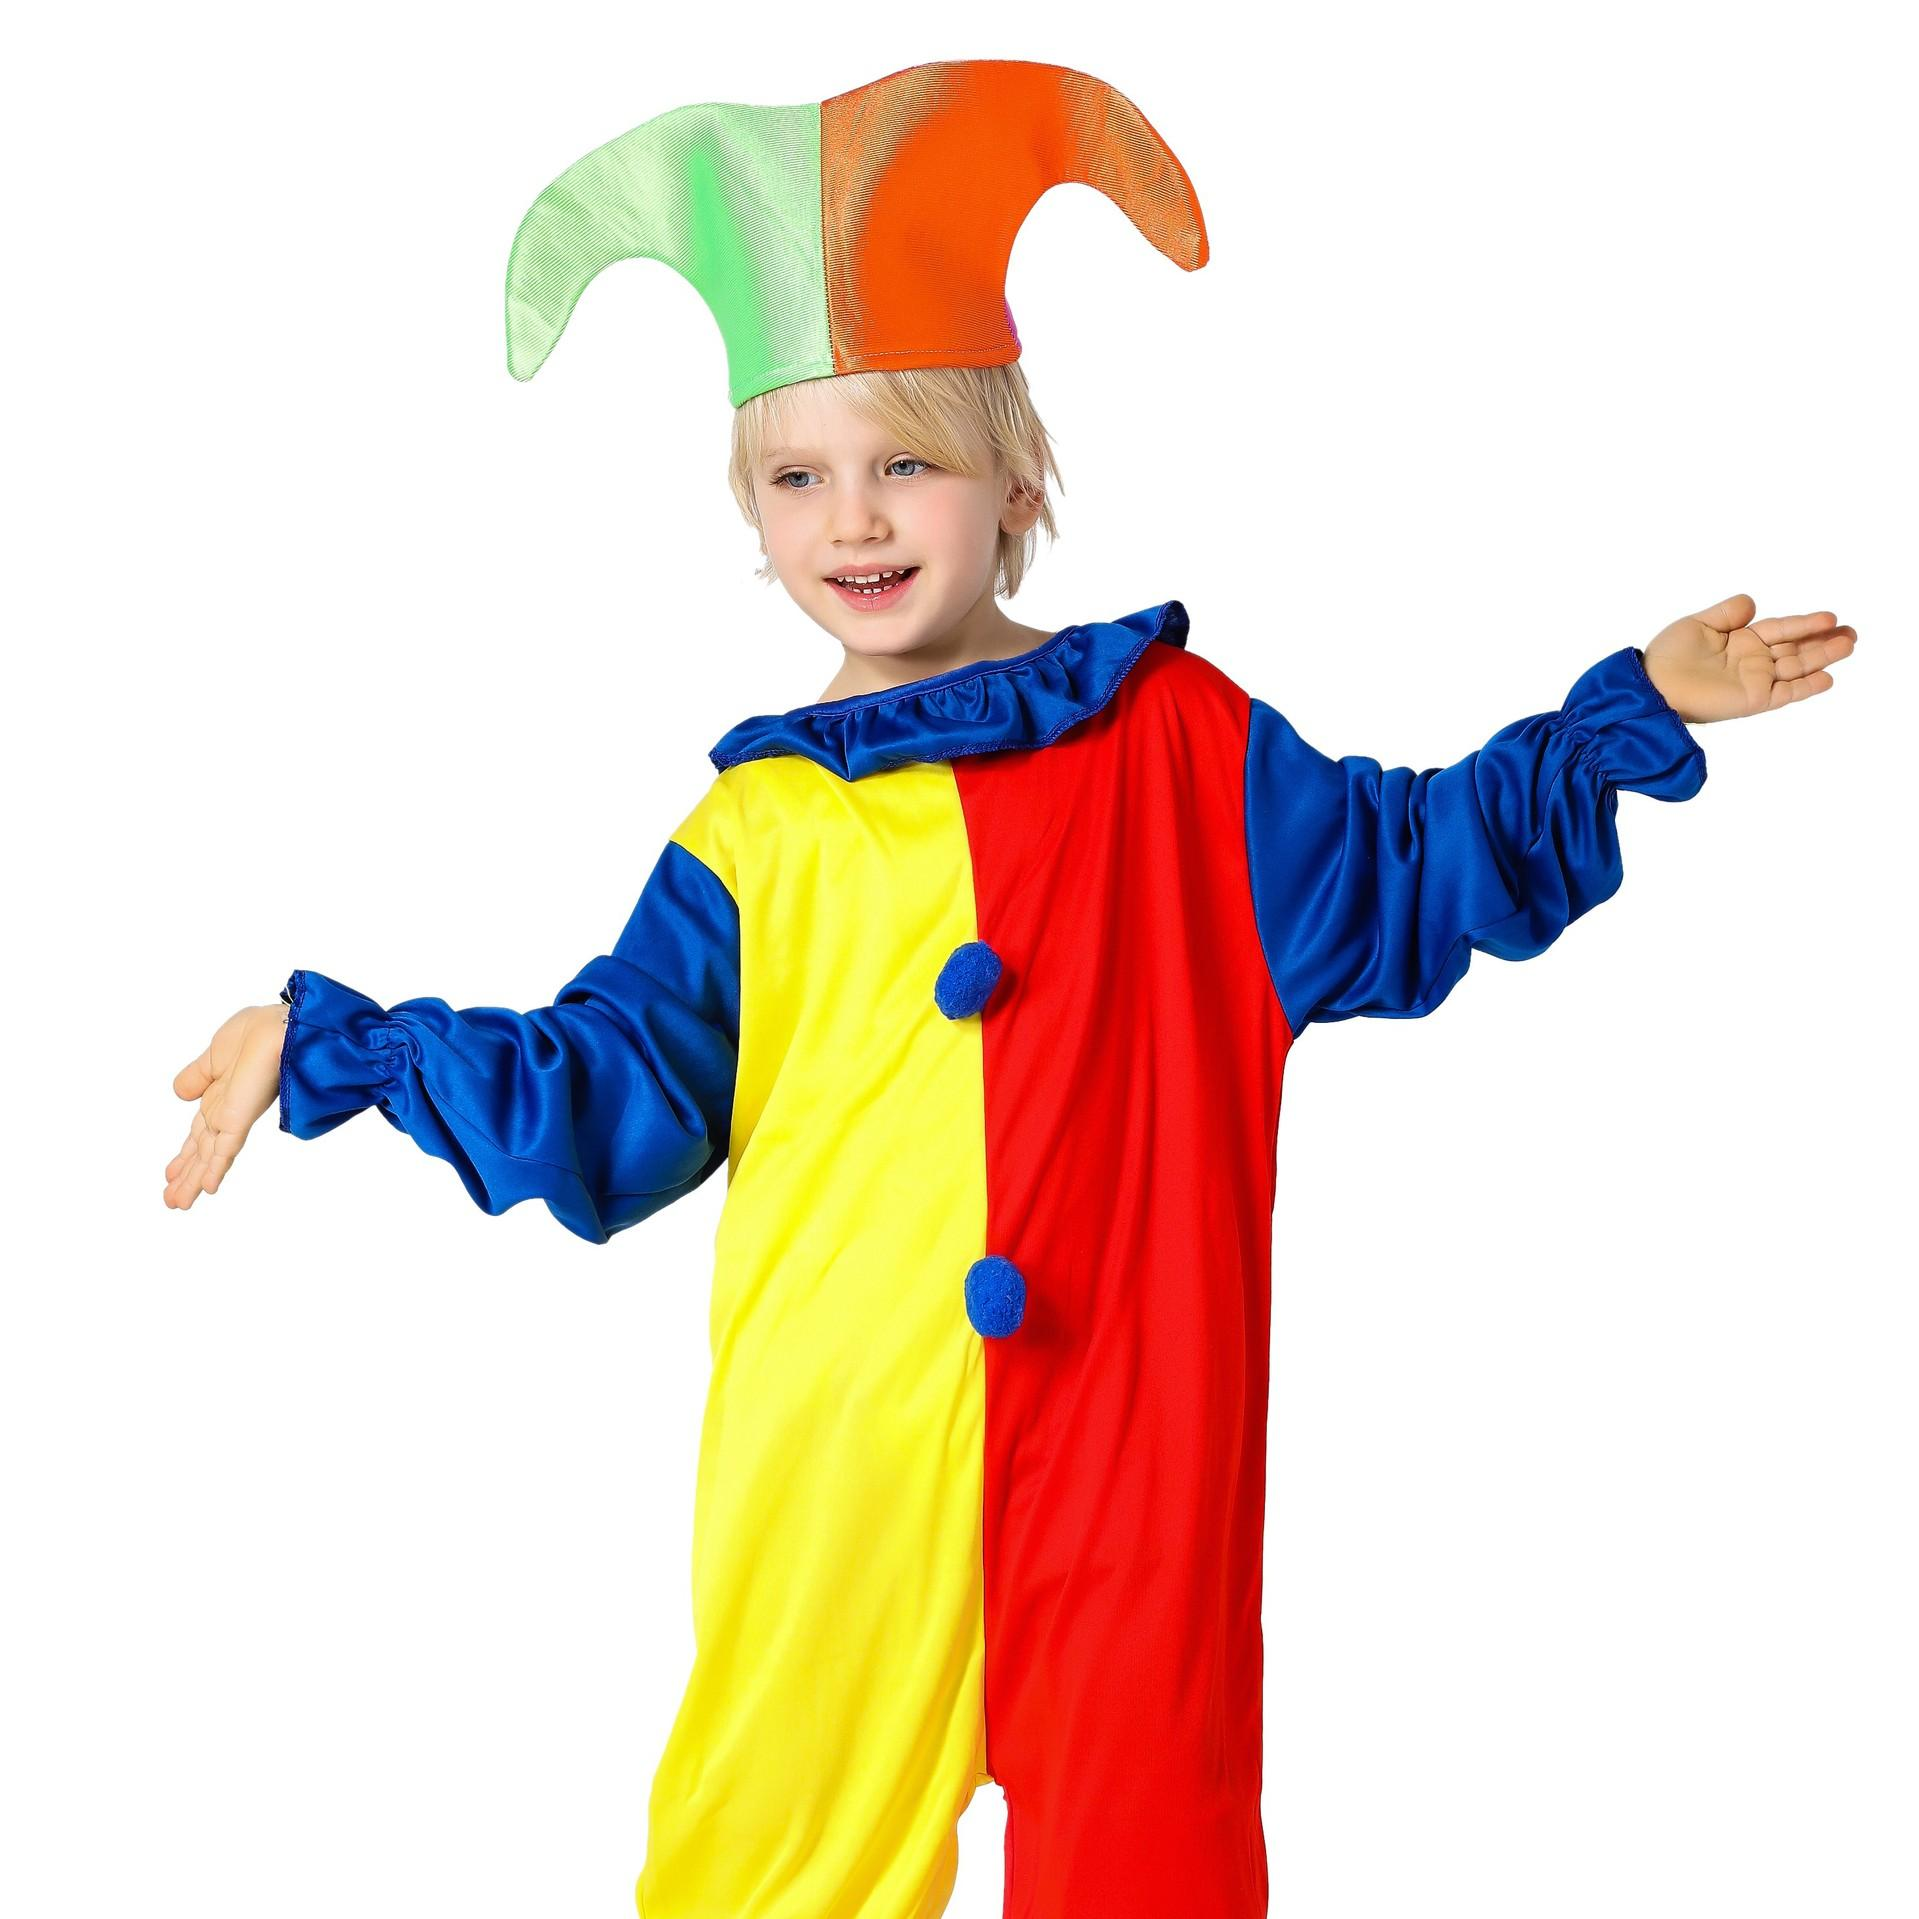 Kids Clothing Baby Clothes Baby Boy Clothes Boys Clothes New Harlequin Costume Kids Clown Halloween Fancy Dresses Cosplay Hot Fashion Set